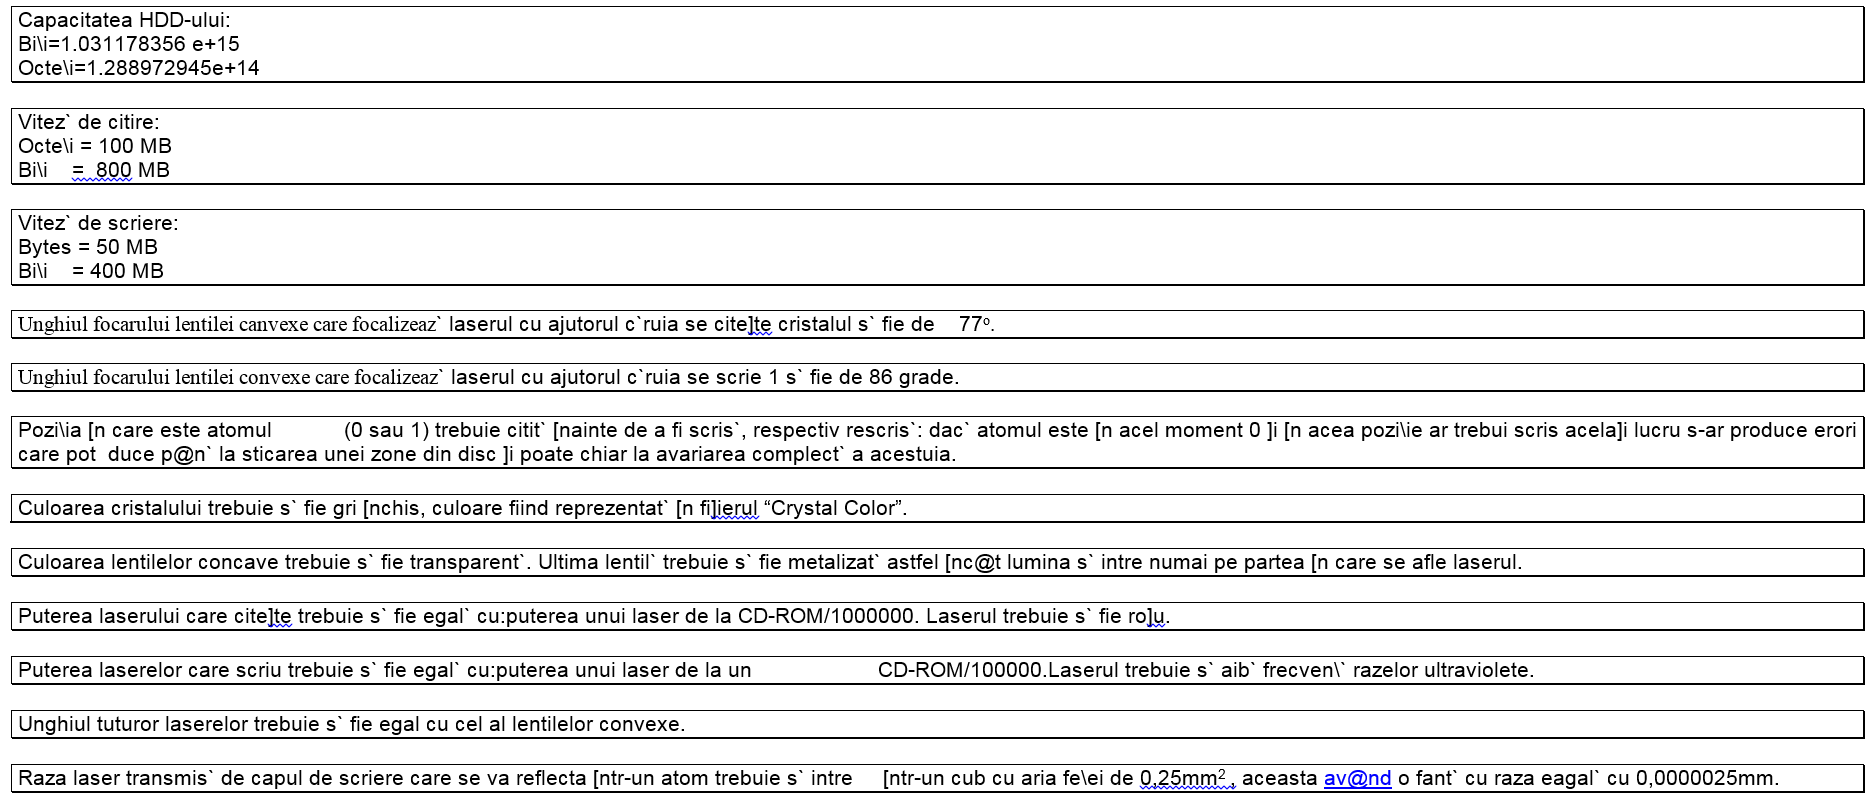 Technical specs of my imaginary Decium hard-drive (August 1997)